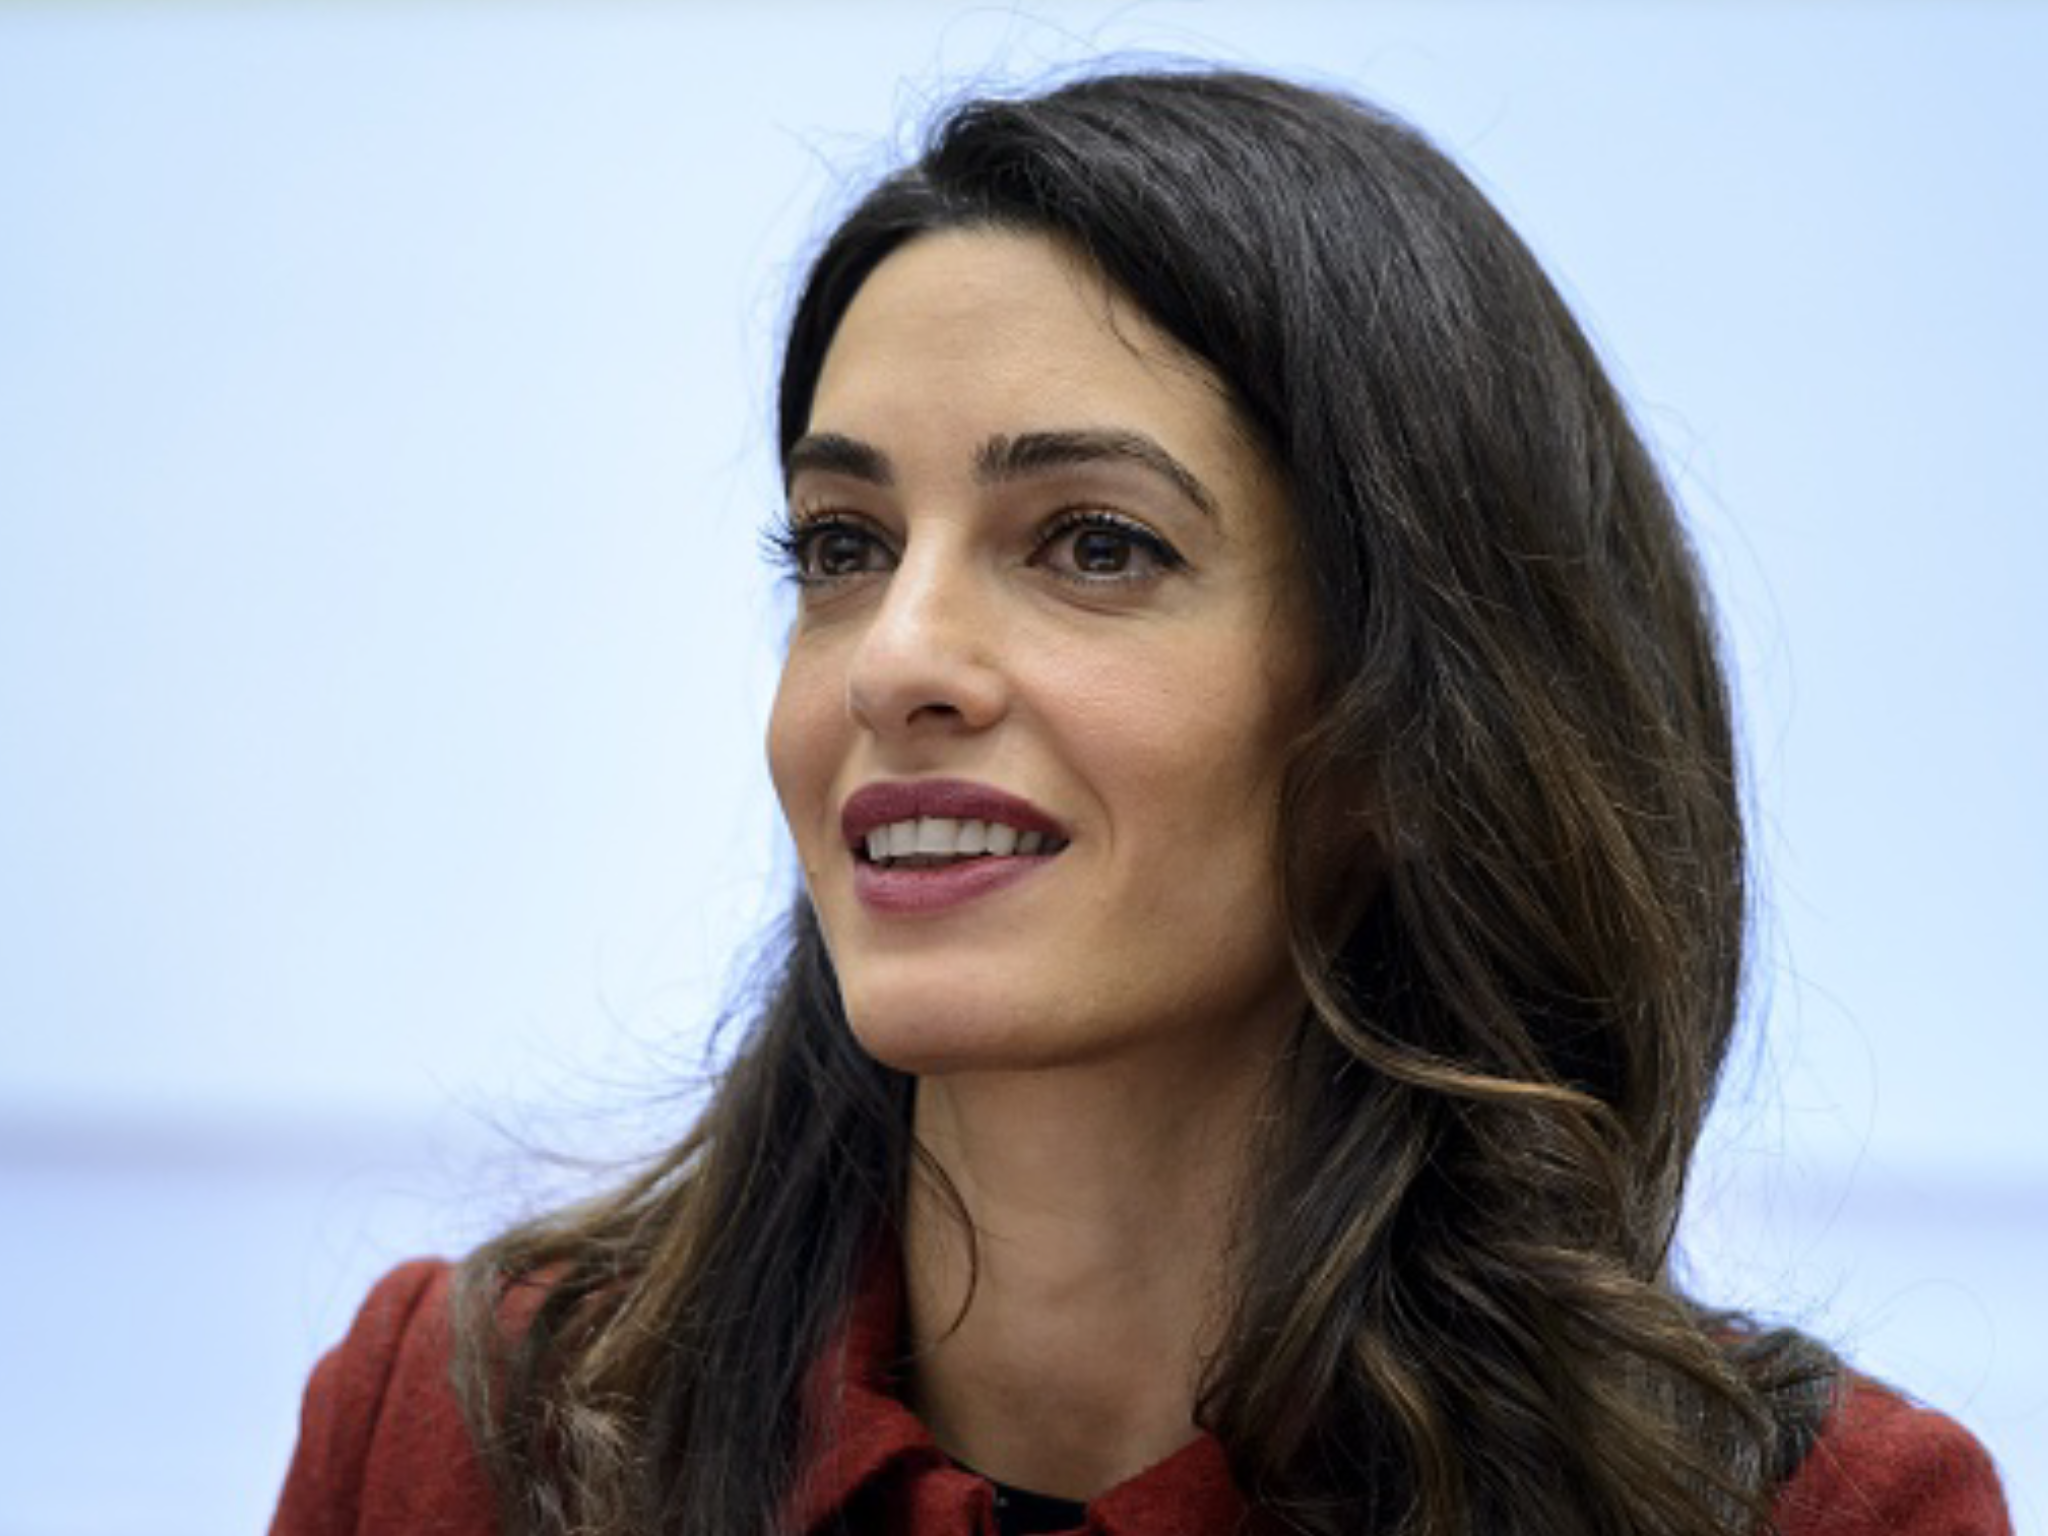 2048x1536 - Amal Clooney Wallpapers 8